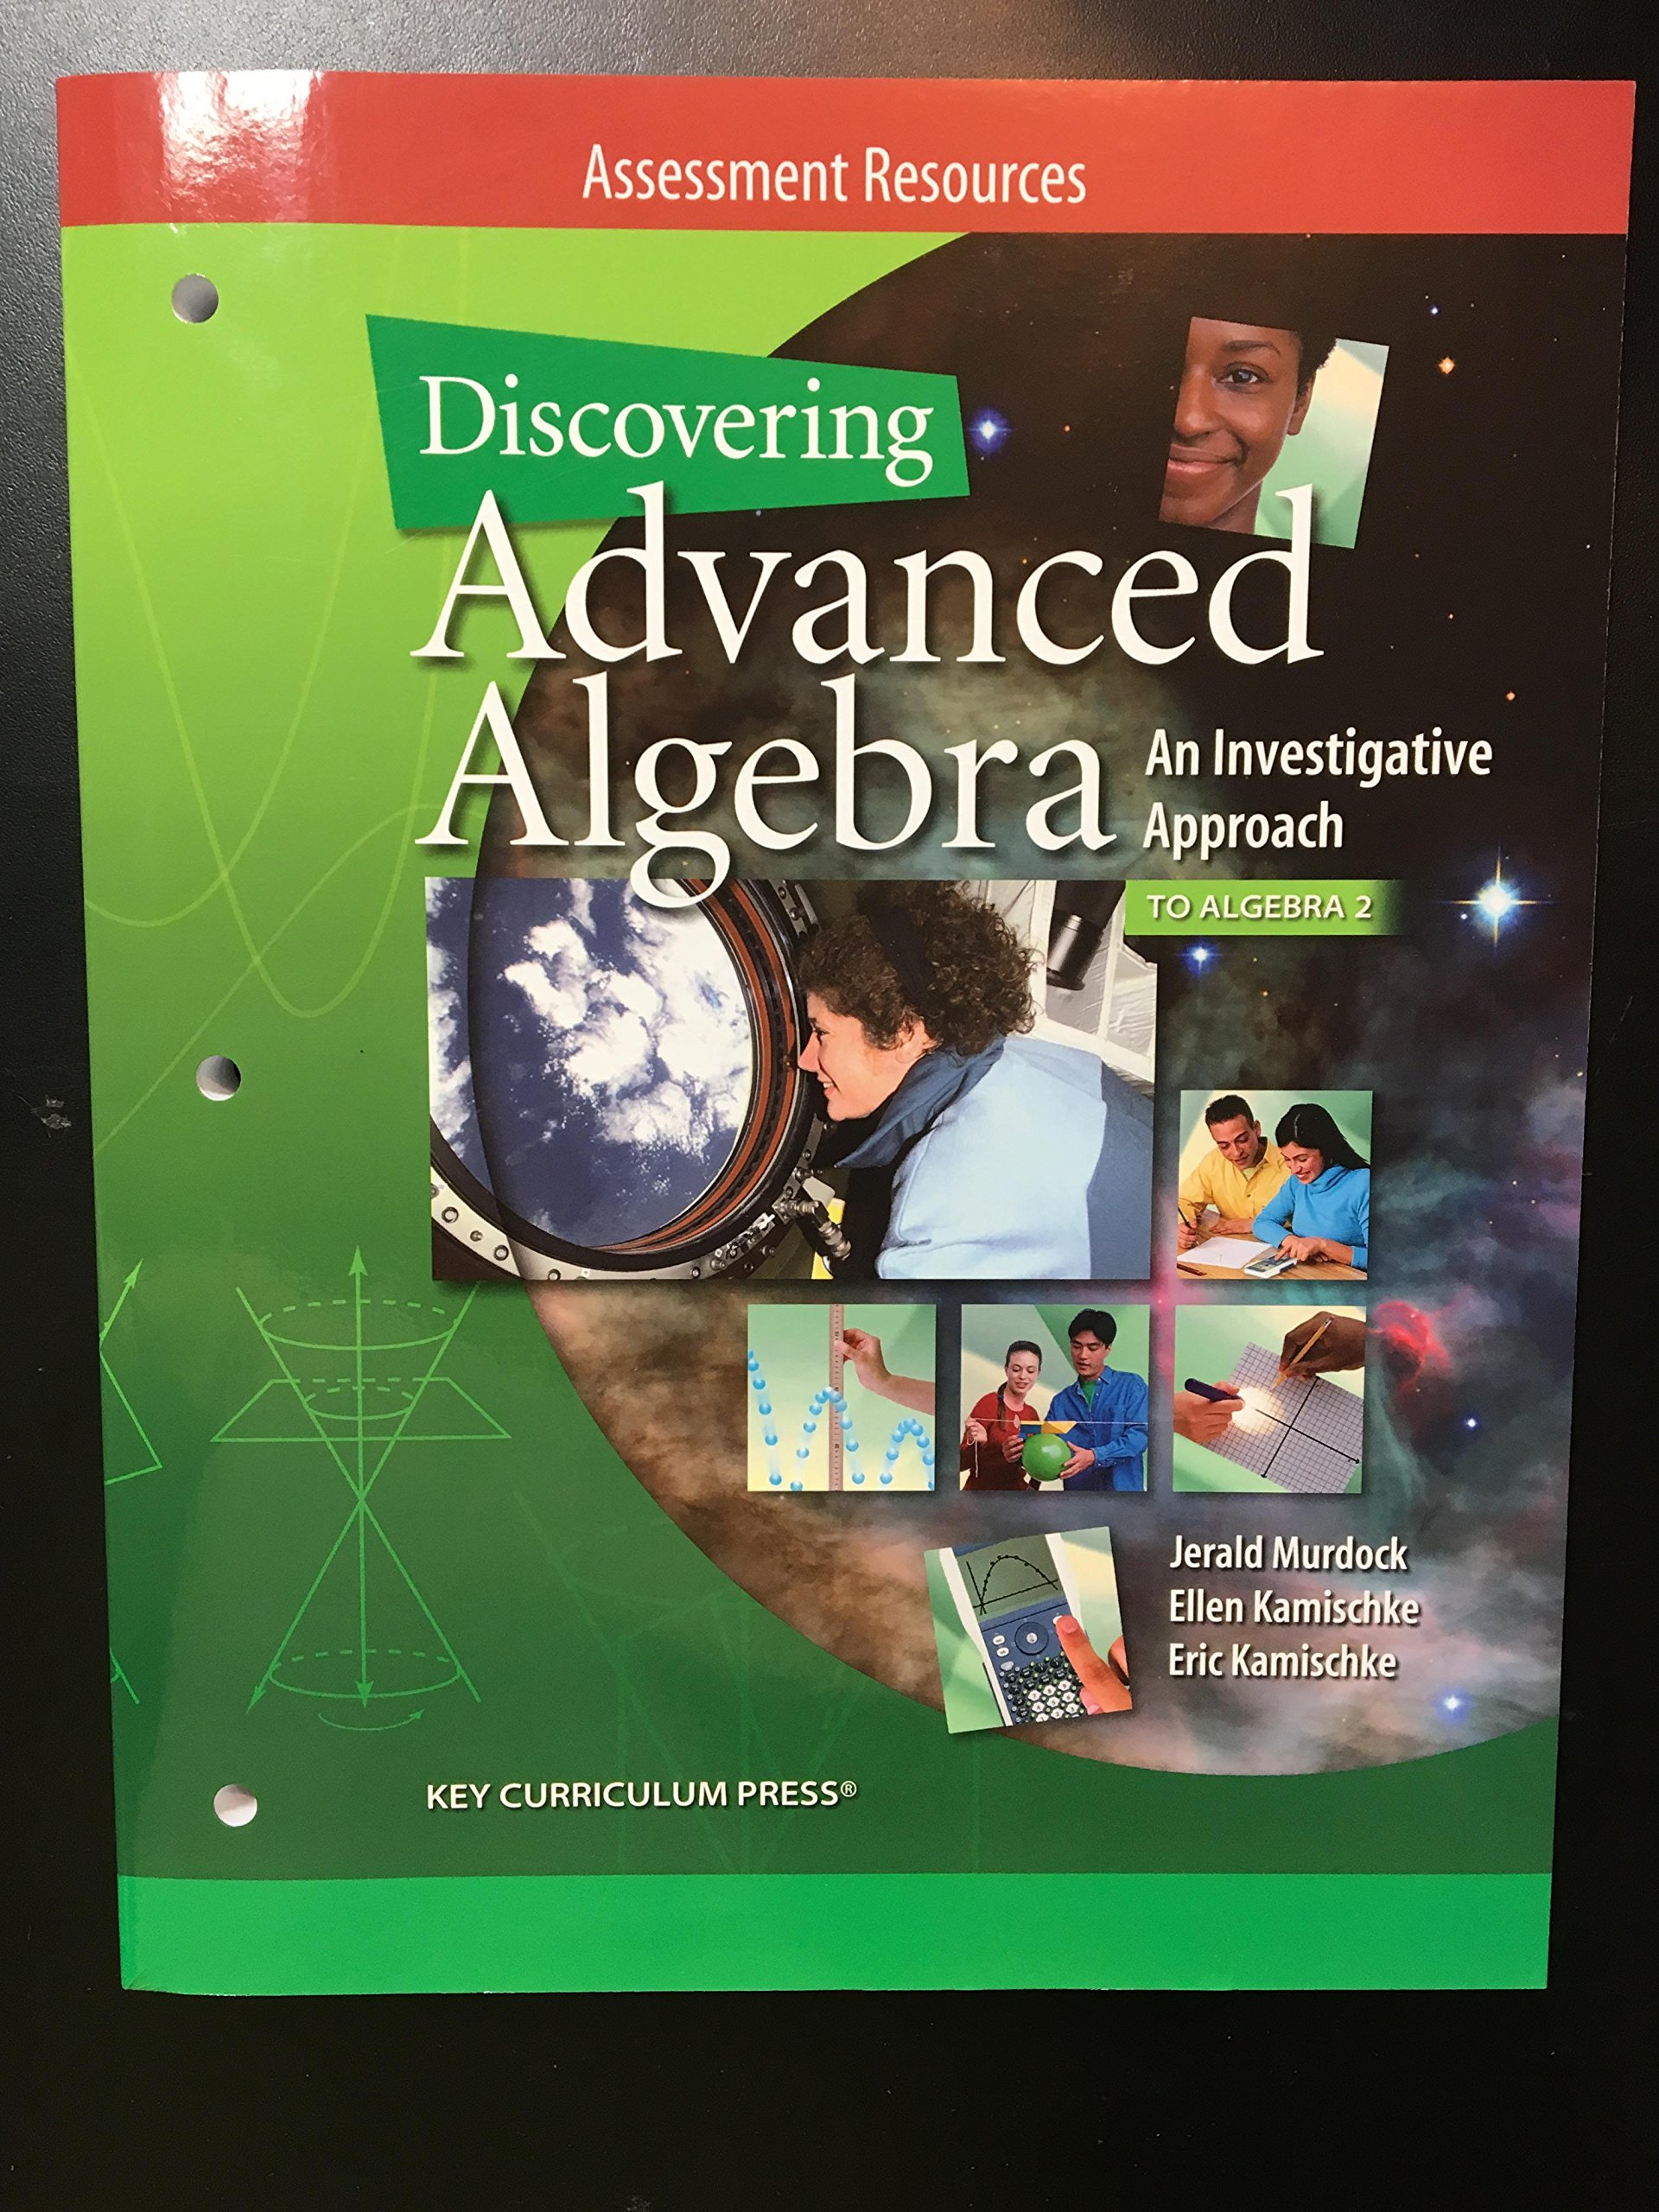 Discovering Advanced Algebra, An Investigative Approach, to Algebra 2 Assessment Resources ebook